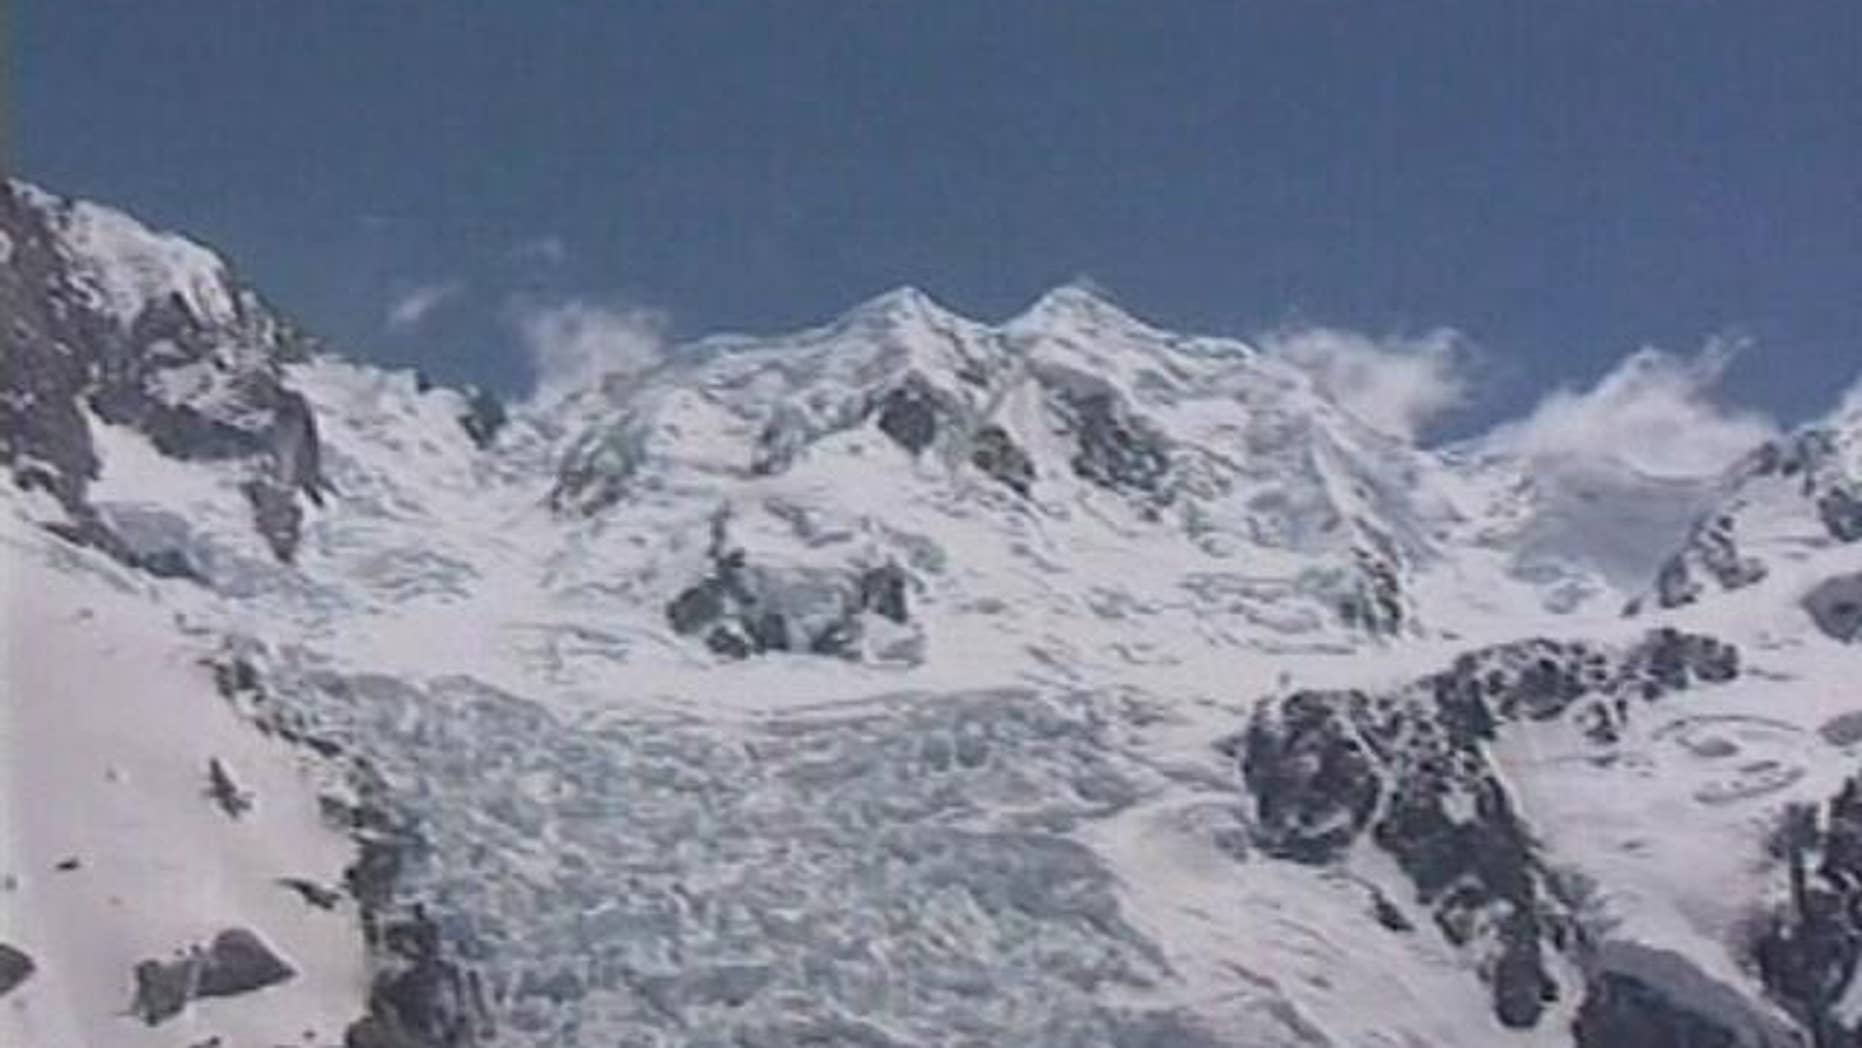 December, 2003 - FILE photo of Mt. Cook, New Zealand.